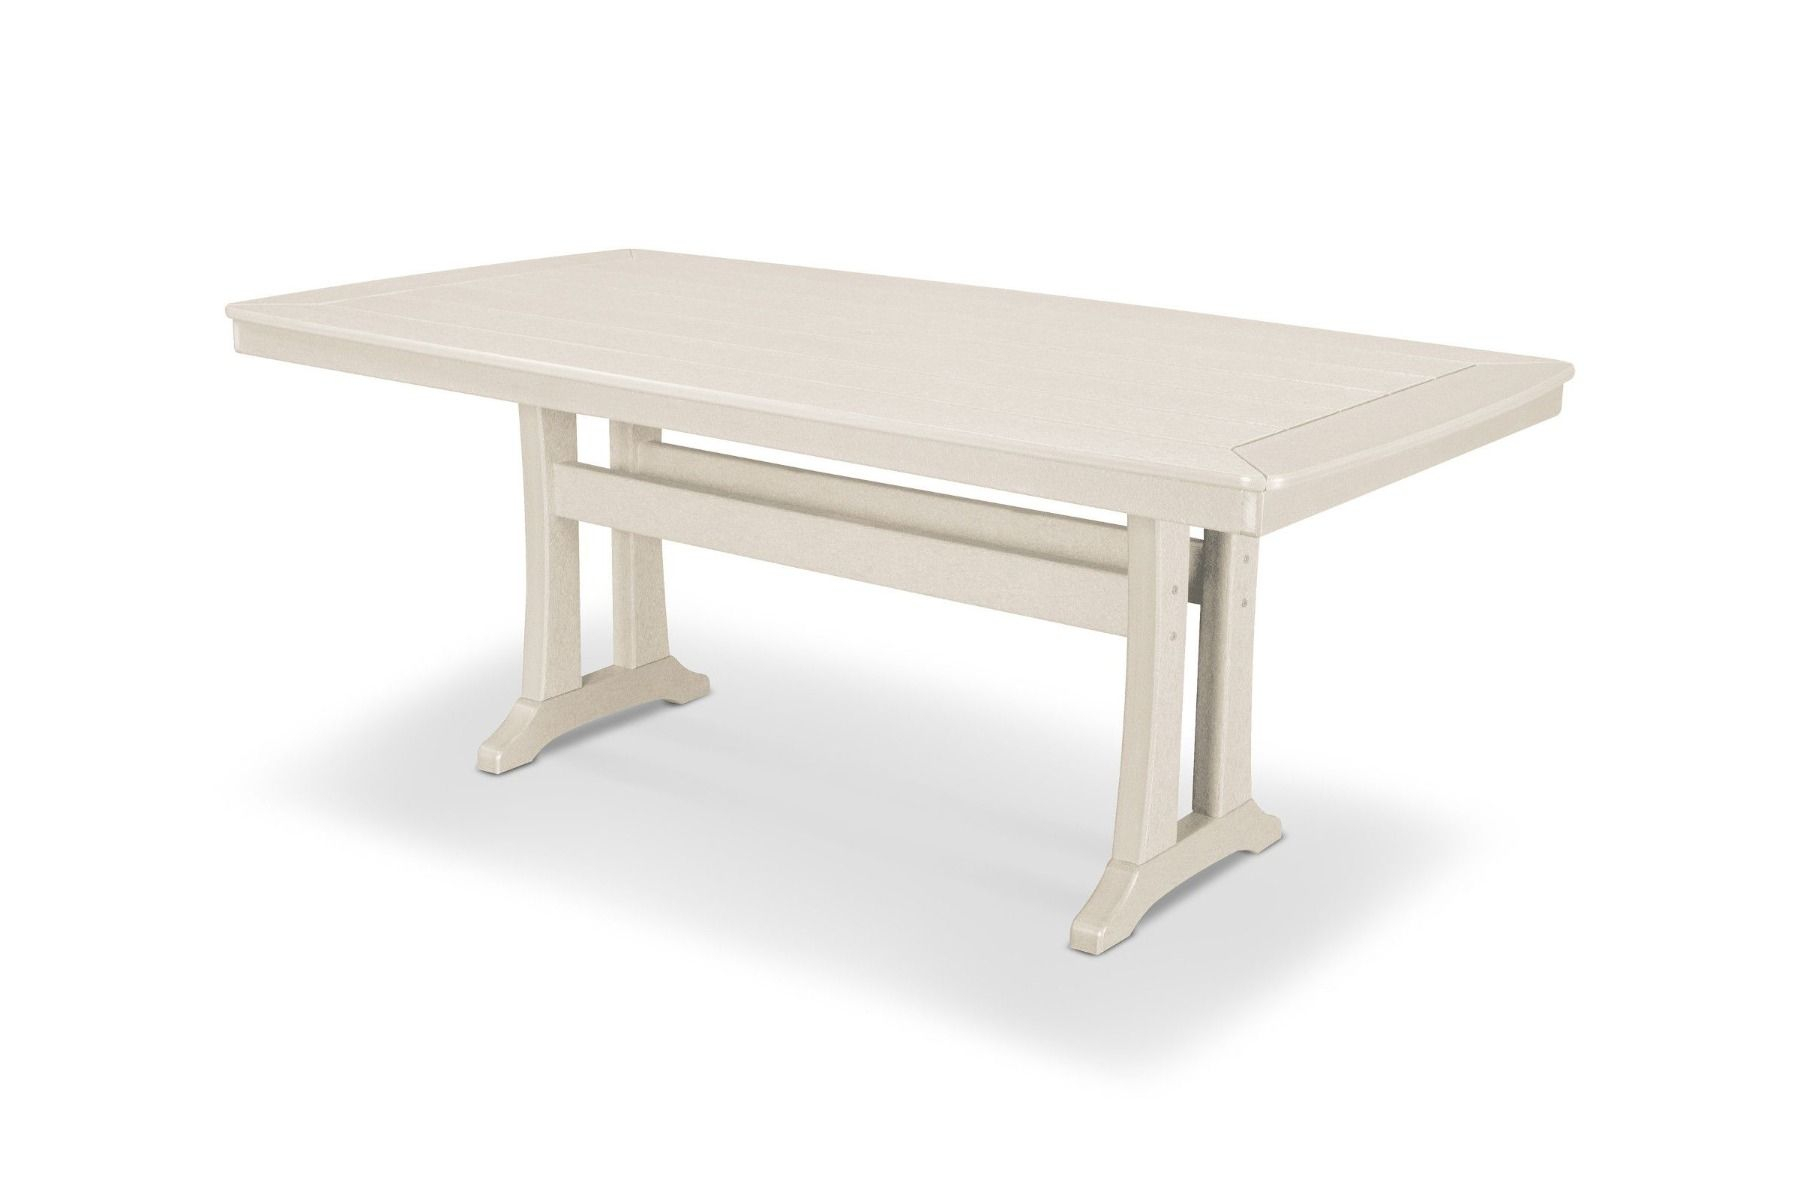 """Nautical Trestle 38"""" X 73"""" Dining Table Pl83 T2L1 In 2018 Alexxes 38'' Trestle Dining Tables (View 4 of 15)"""